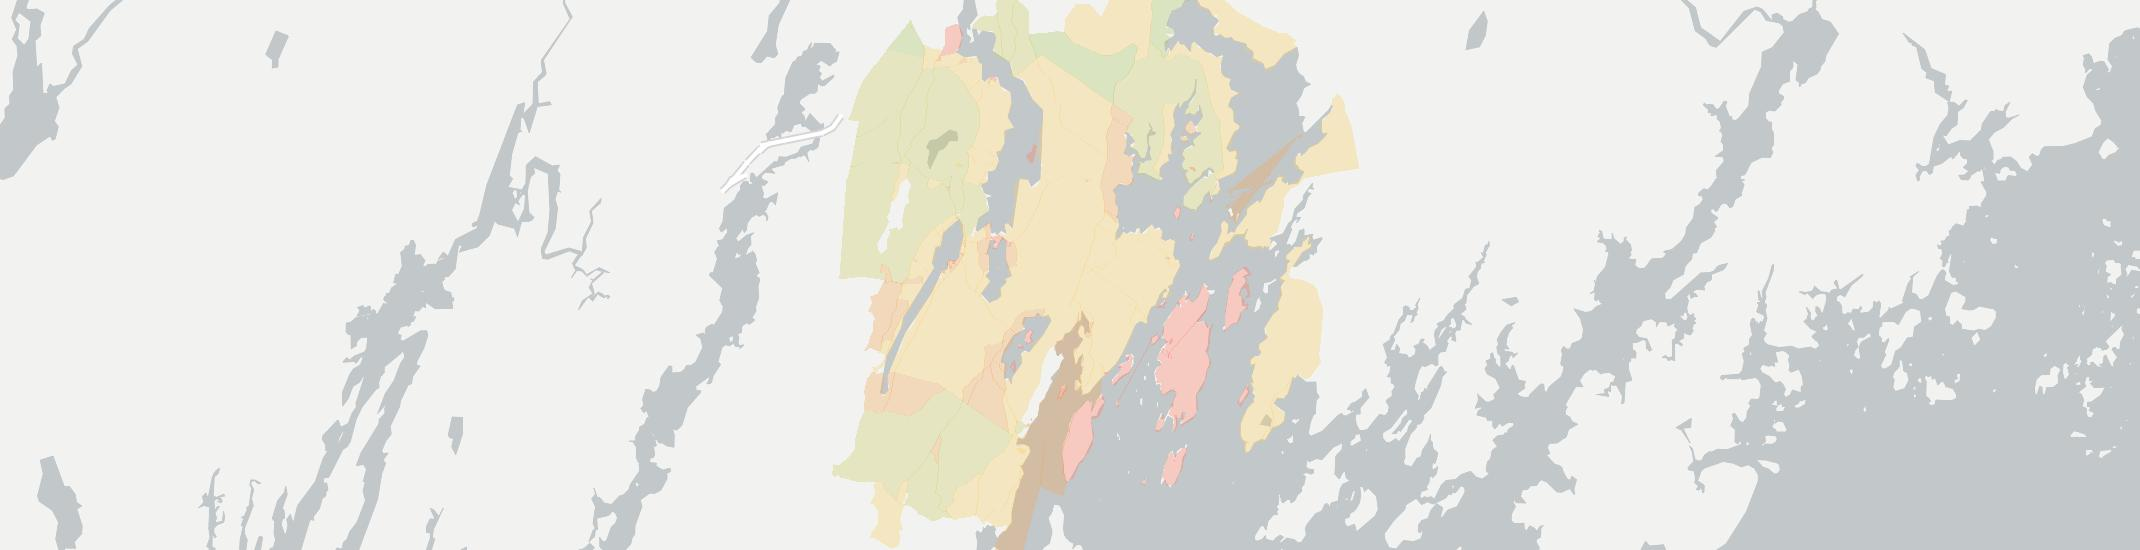 Bremen Internet Competition Map. Click for interactive map.